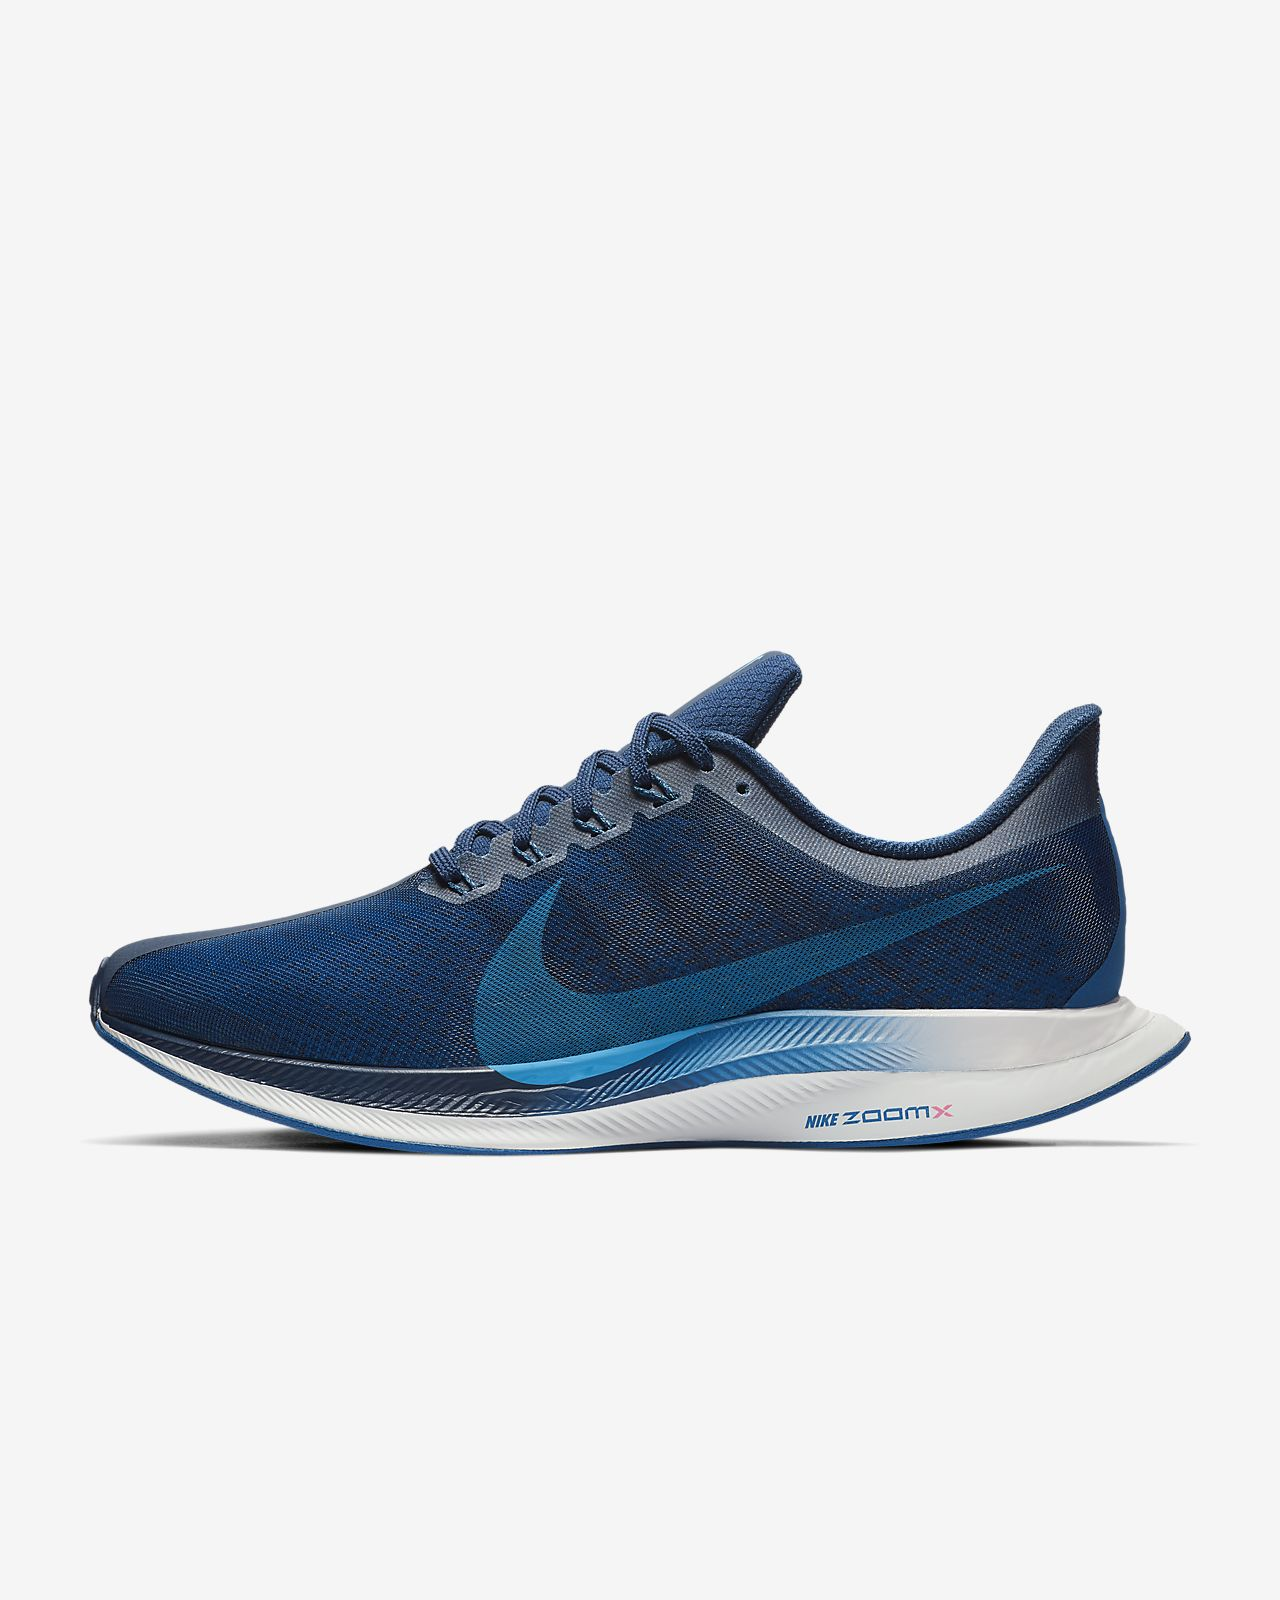 NIKE AIR ZOOM PEGASUS 35 TURBO INDIGO FORCEPHOTO BLUE Nike air zoom Pegasus 35 turbo